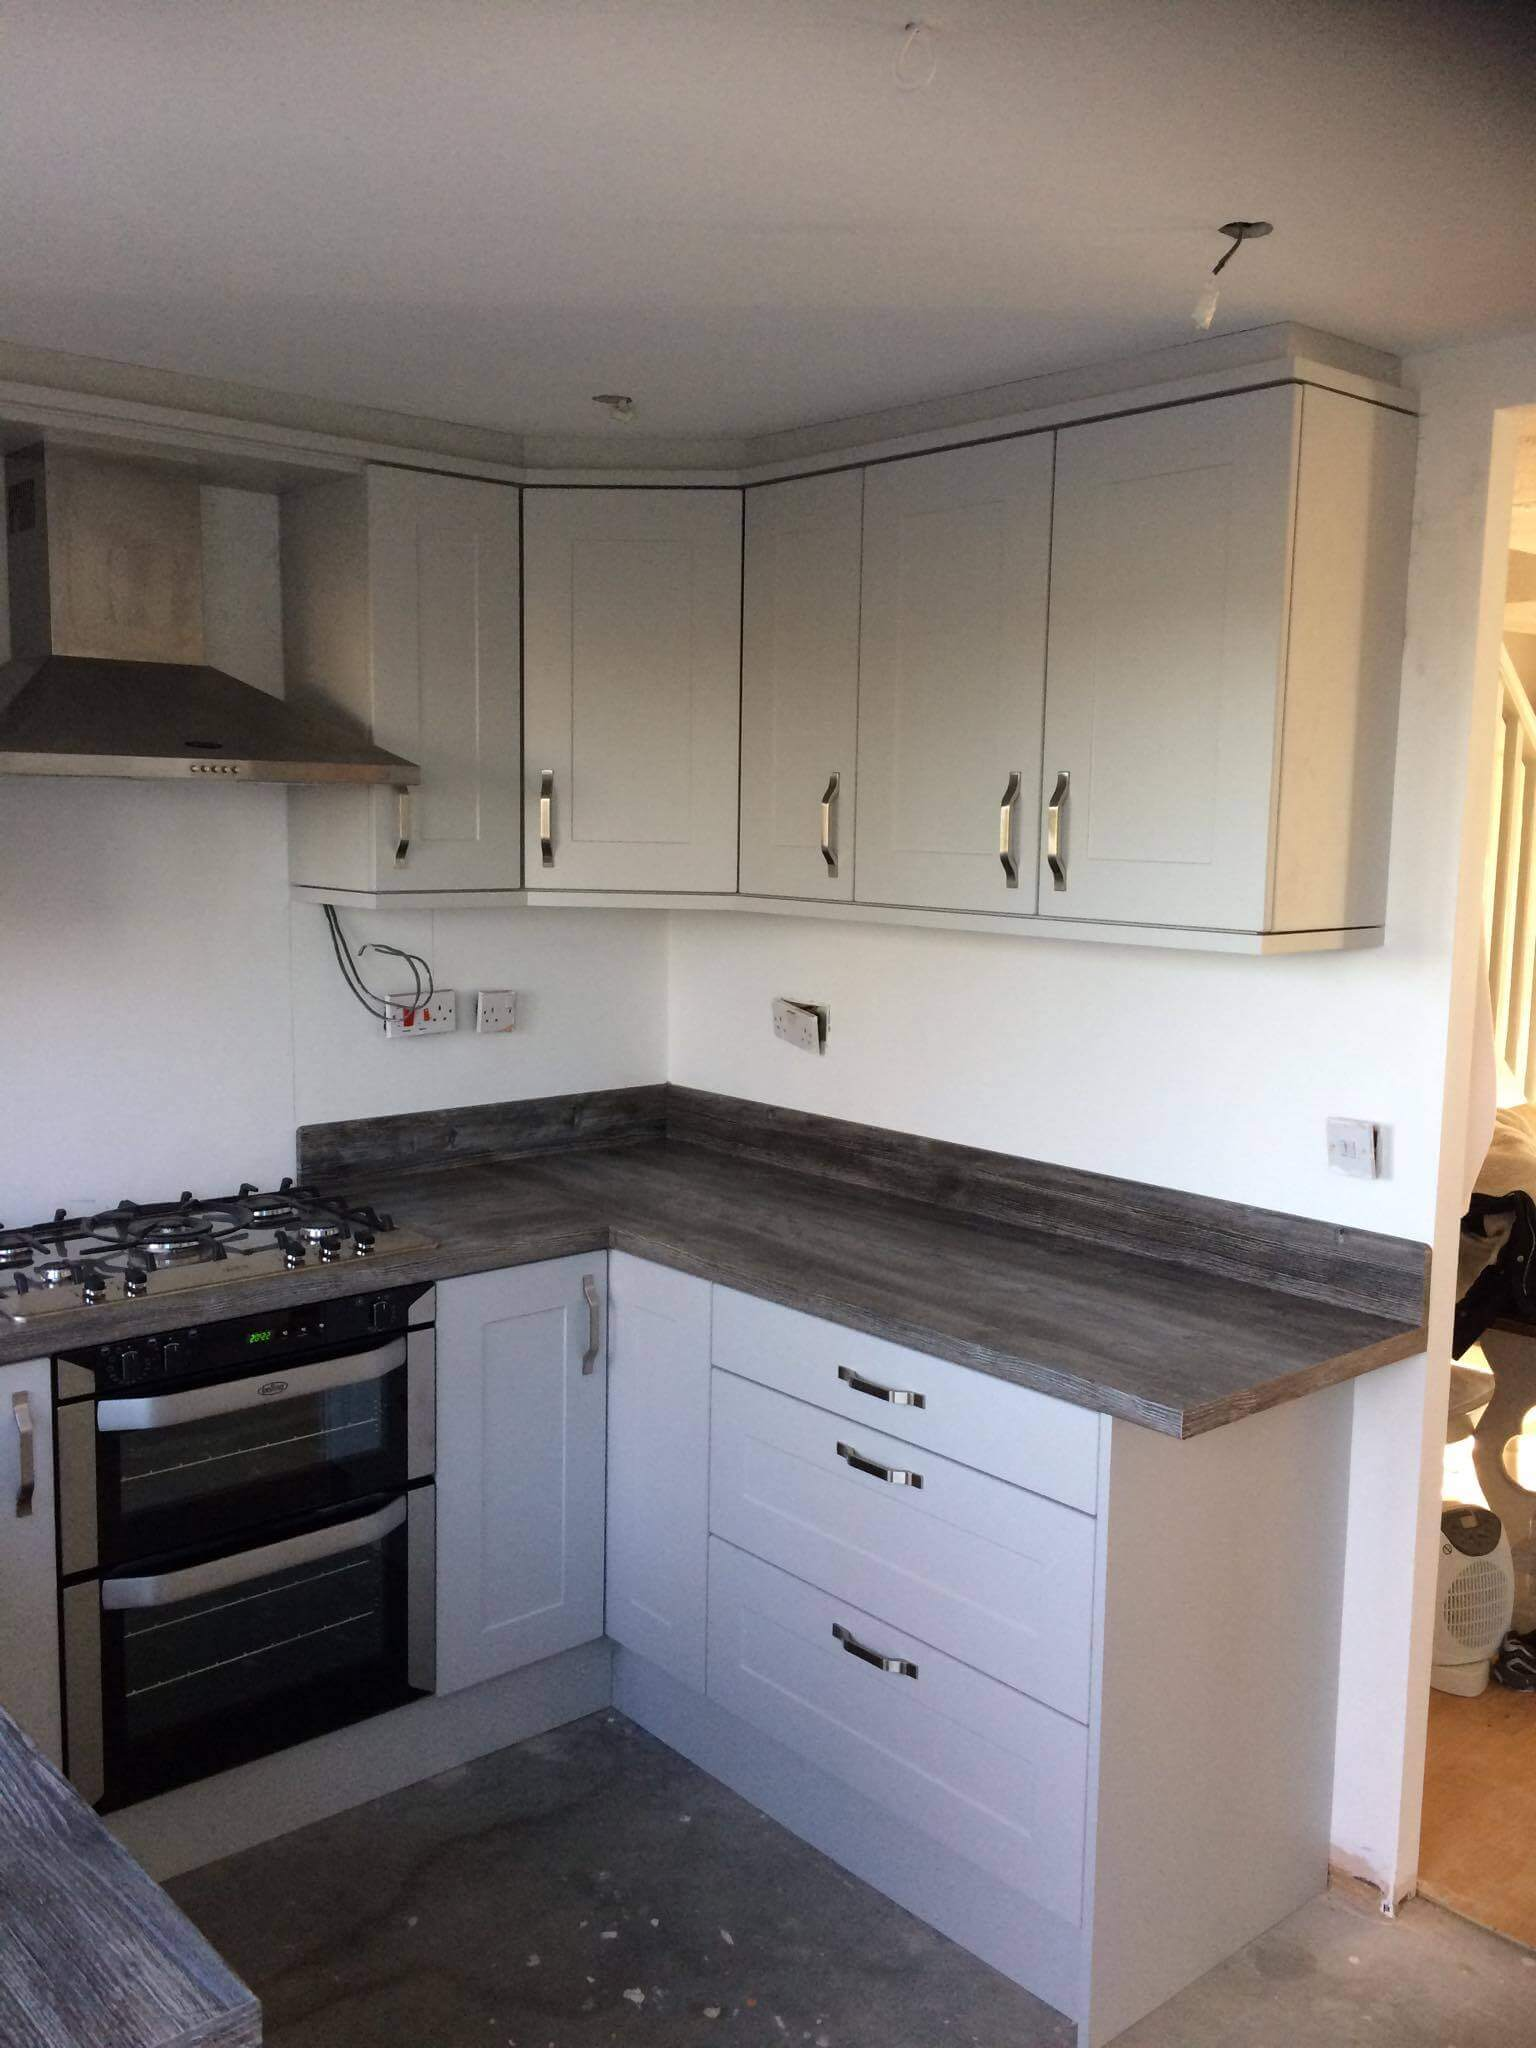 Bespoke Kitchens Supplied and Fitted In Barnsley